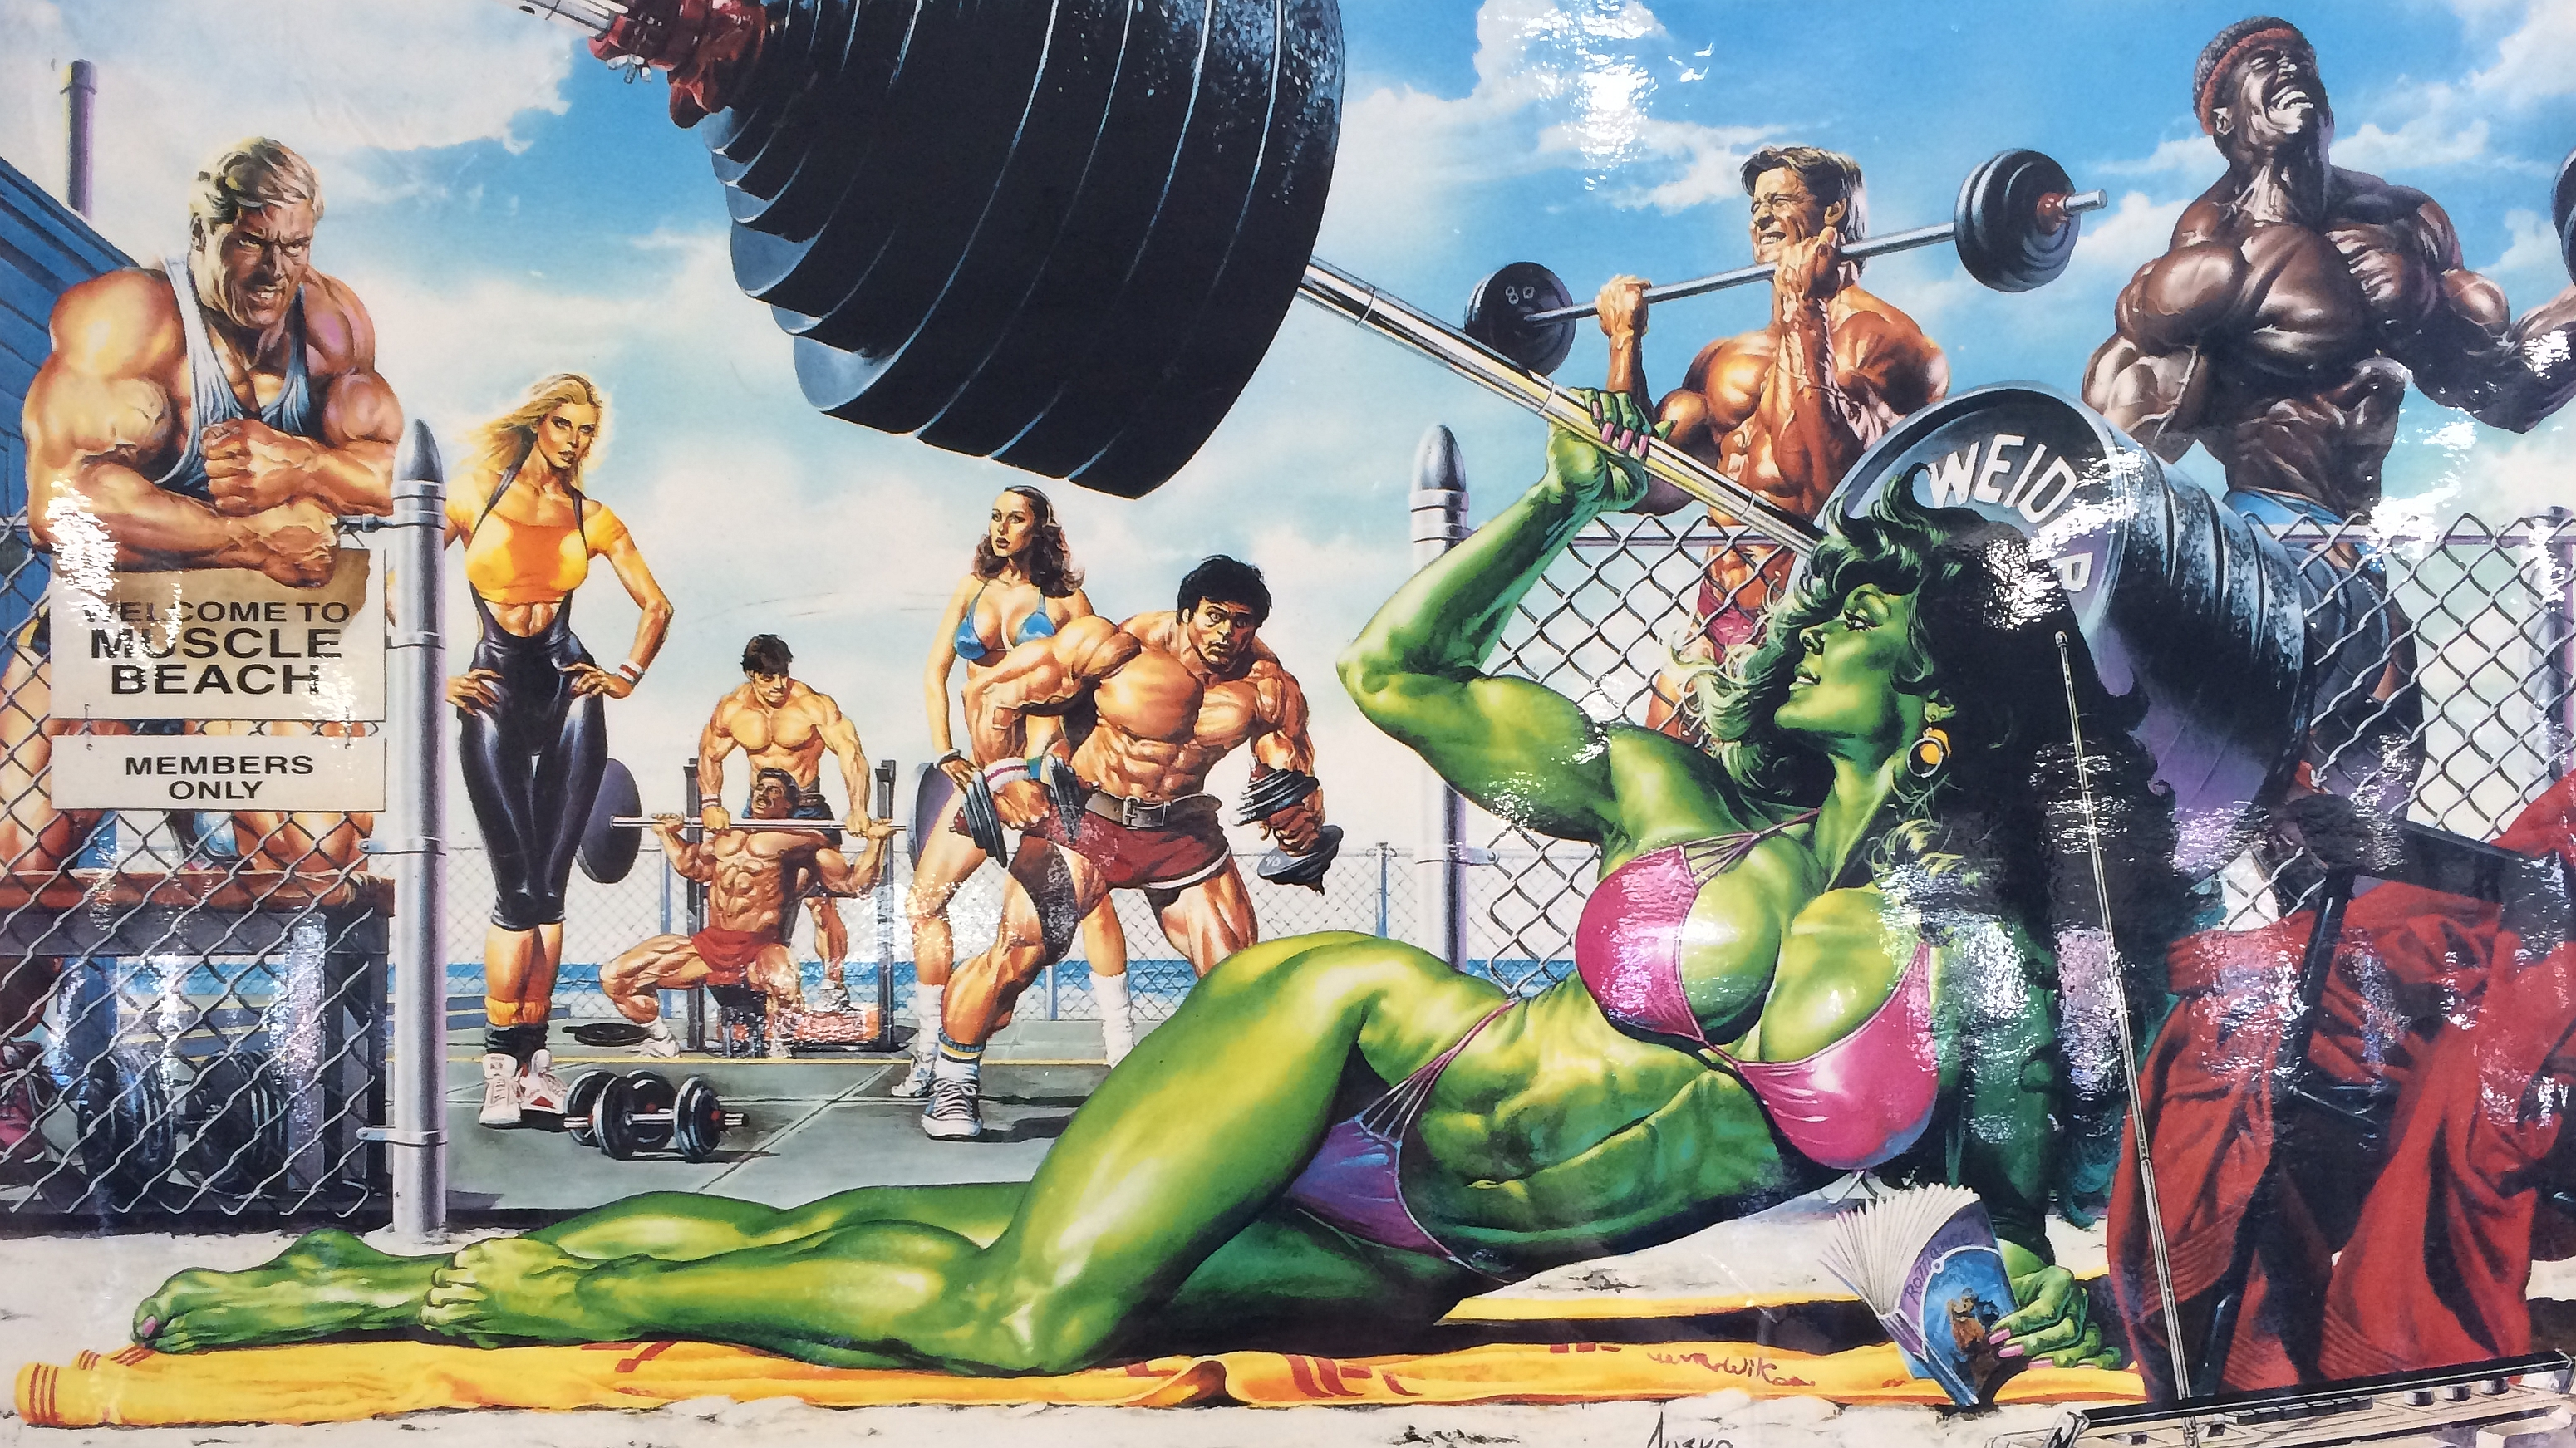 She-Hulk-on-muscle-beach.jpg